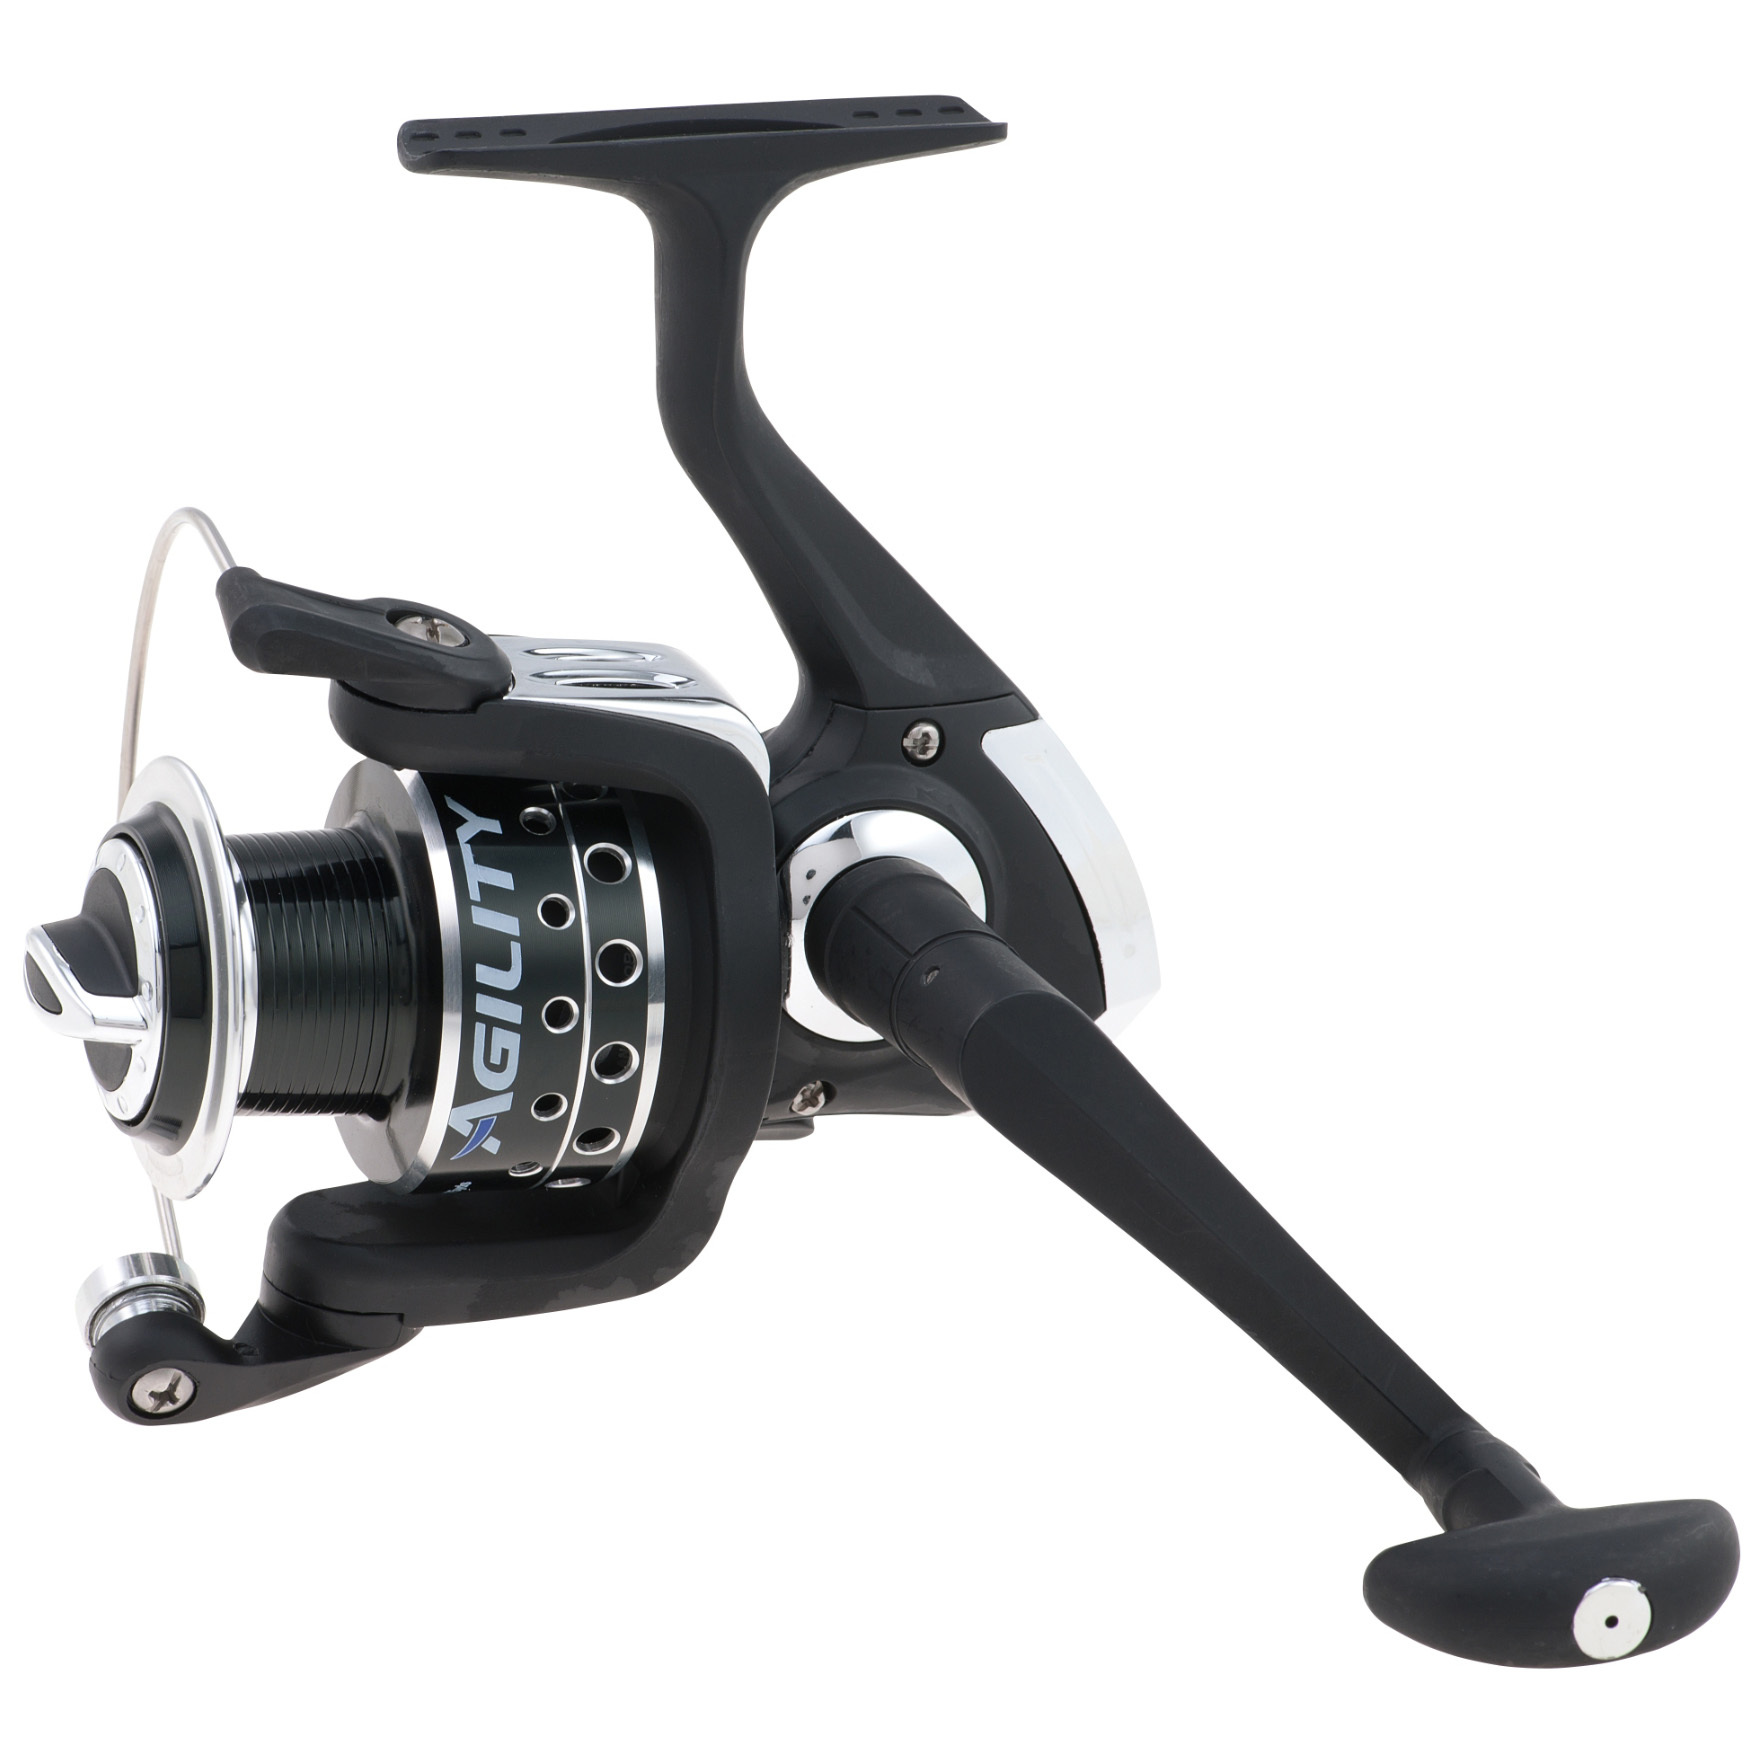 Shakespeare Agility Spinning Reel. Great looks, great performance for an extra-great low price. Can't beat the value on smooth 4BB + 1RB smooth performance, commanding multi-disk drag system, and lots more:4 ball bearings for smooth performance Anti-reverse bearing for solid hooksets Machined and anodized aluminum spool Configurable for right or left-hand retrieve Multi-disk drag system for fight control Ported spool for lightweight feel 5.2:1 gear ratio.AG25X:Size 25 Mono line capacity (yds. / lb.): 200/2, 120/4, 90/6.AG30X:Size 30 Mono line capacity (yds. / lb.): 190/4, 140/6, 110/8.AG35X:Size 35 Mono line capacity (yds. / lb.): 240/6, 200/8, 175/10.AG40X:Size 40 Mono line capacity (yds. / lb.): 240/8, 210/10, 175/12.State Model, as available in the Shopping Cart. - $24.99